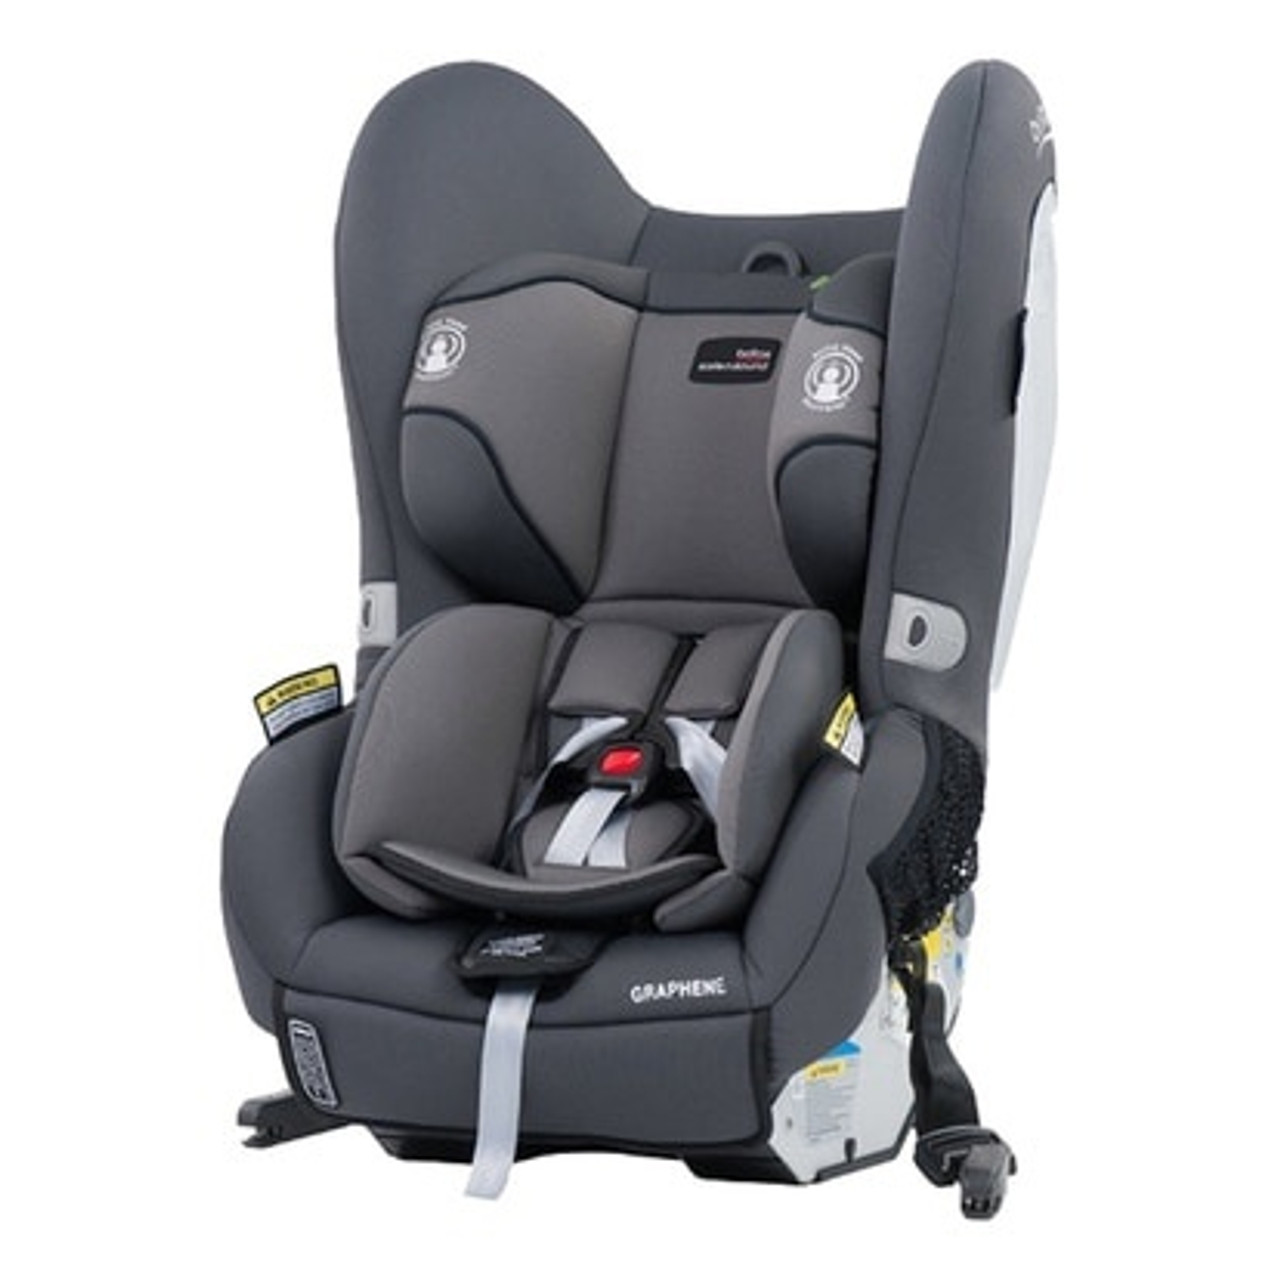 Britax Graphene advances Britax convertible car seat range with the addition of the Torso Side Impact Cushion Technology!